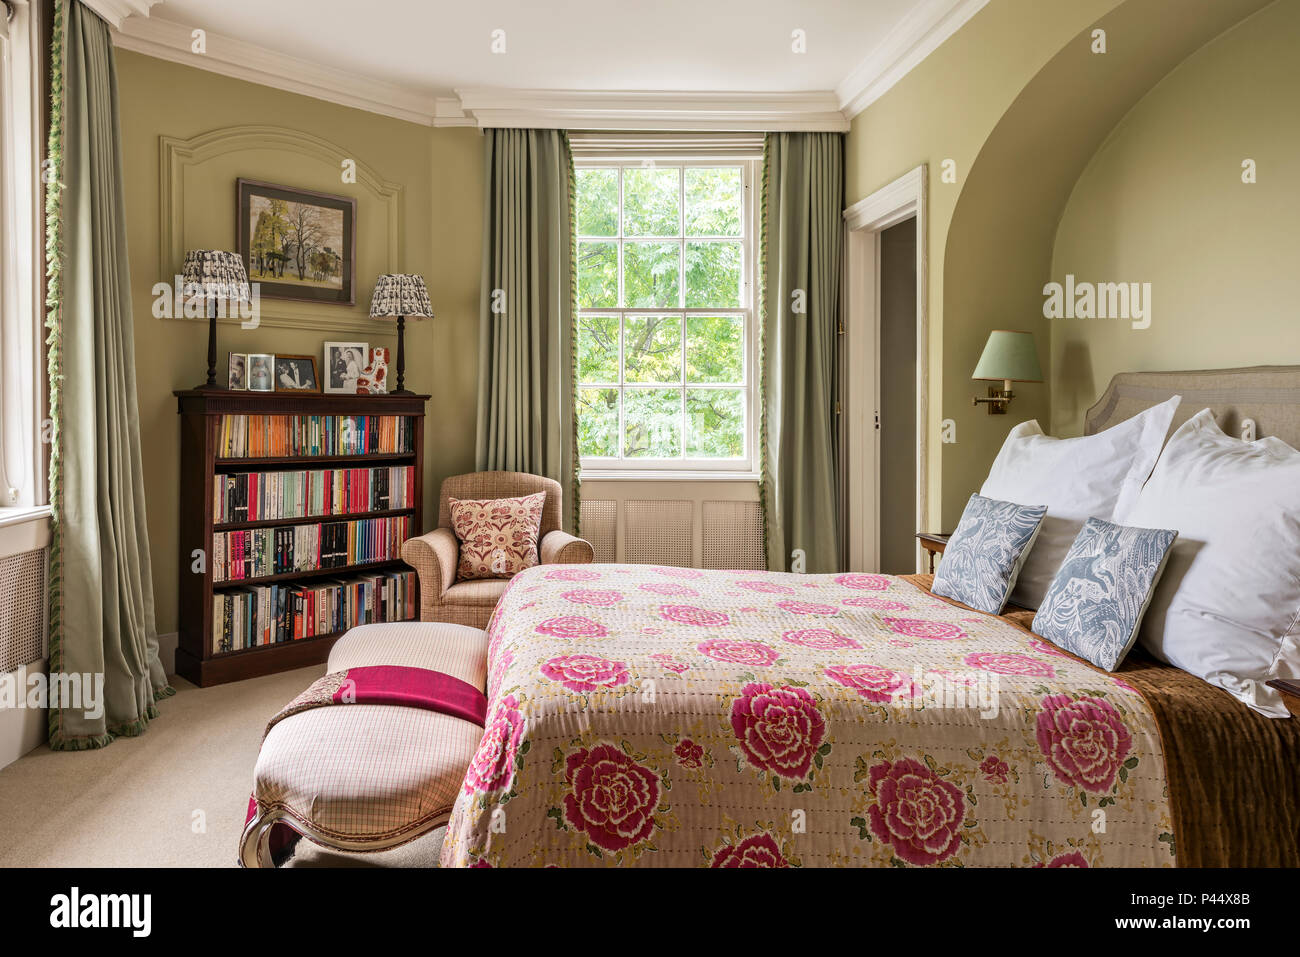 Pink floral quilted cover on bed in Victorian home with vintage ...